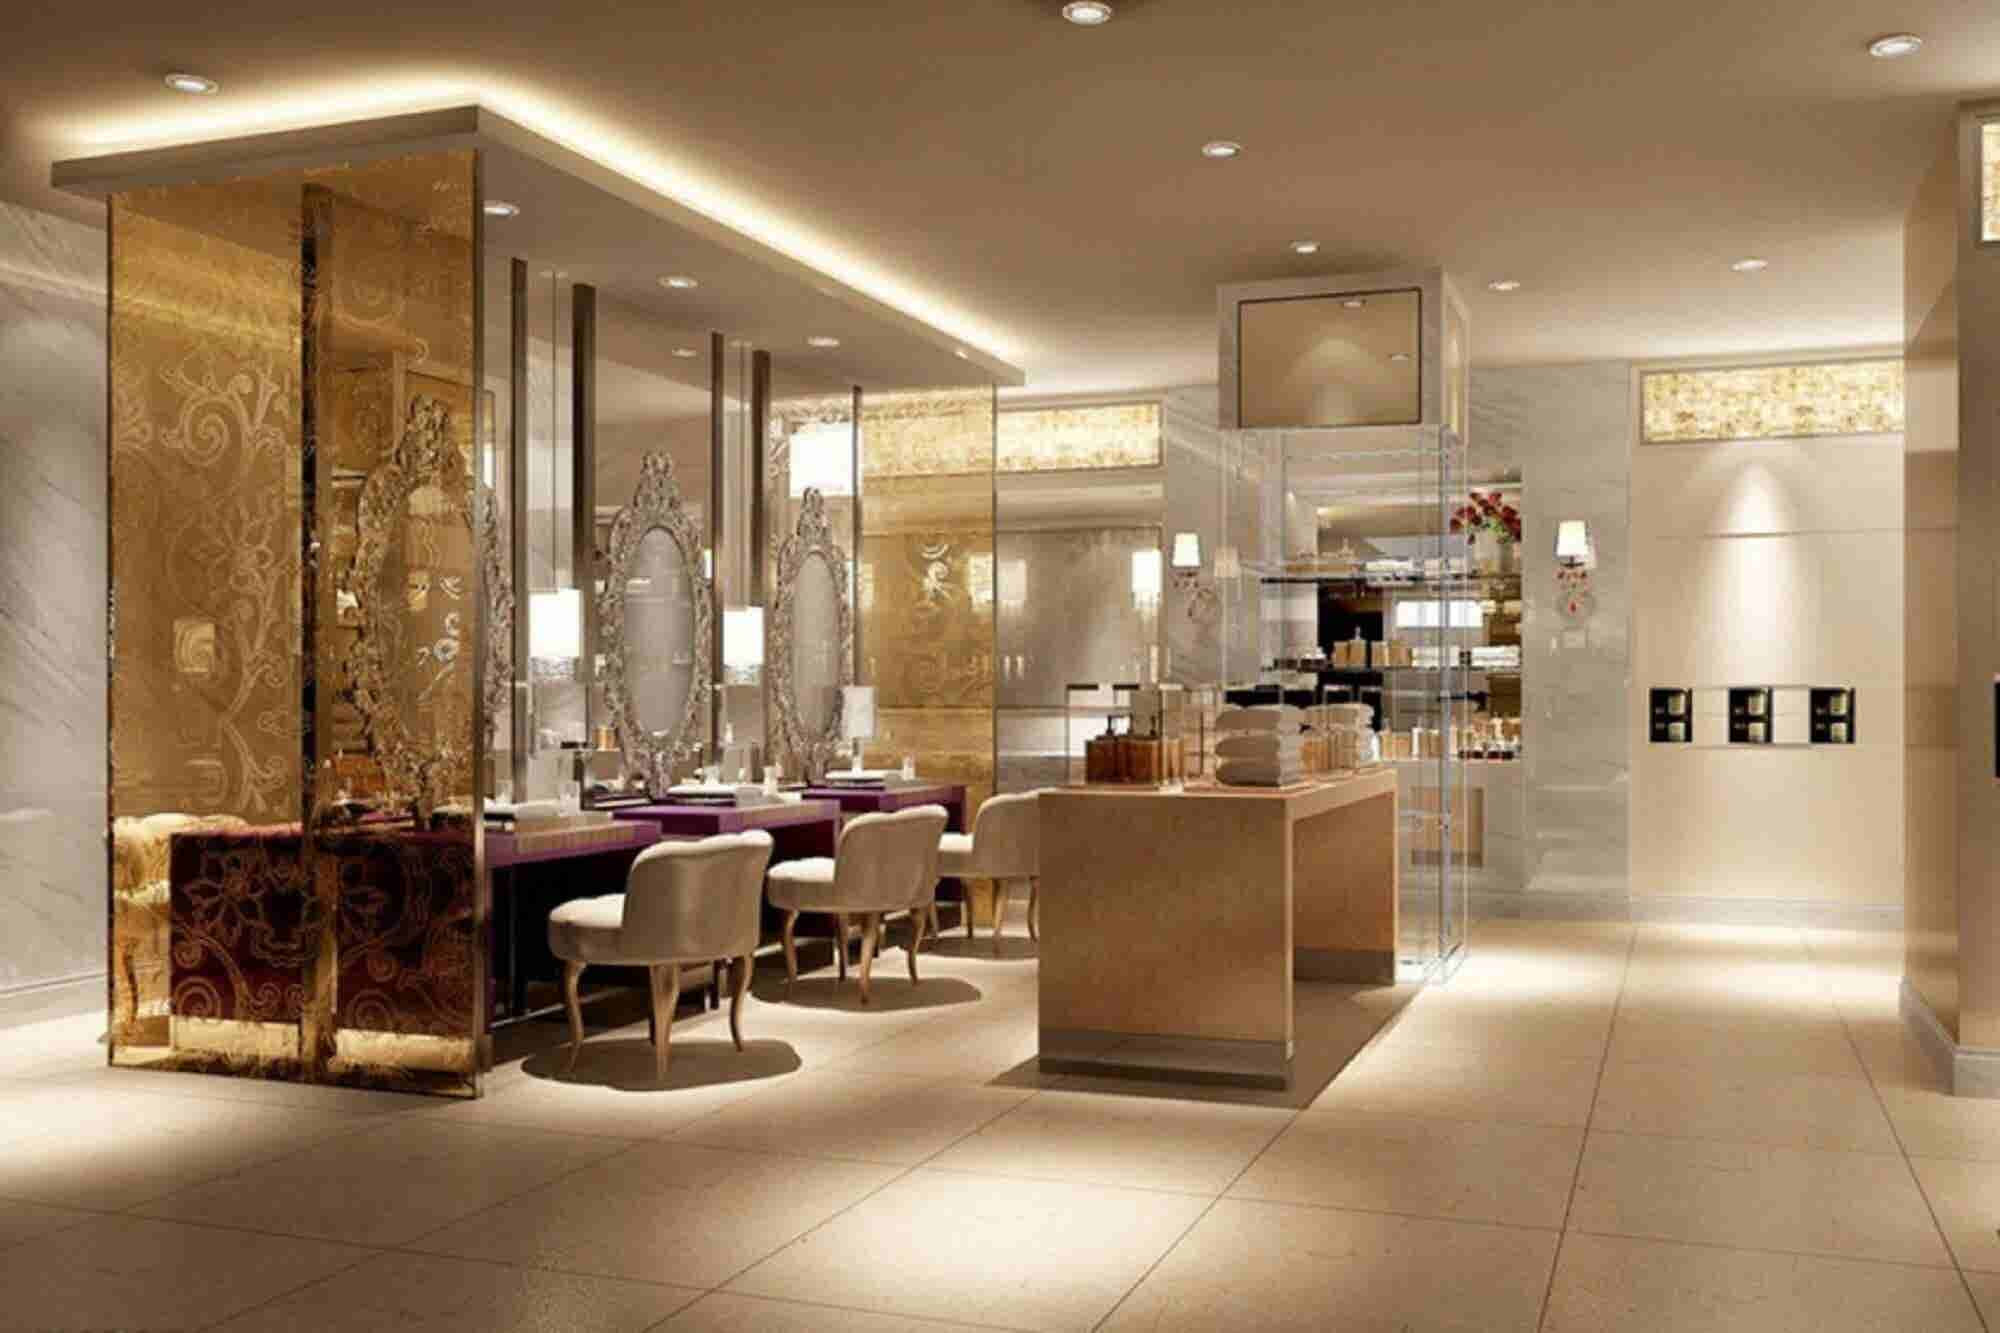 Why Better Interior Attracts More Customers in Beauty Business